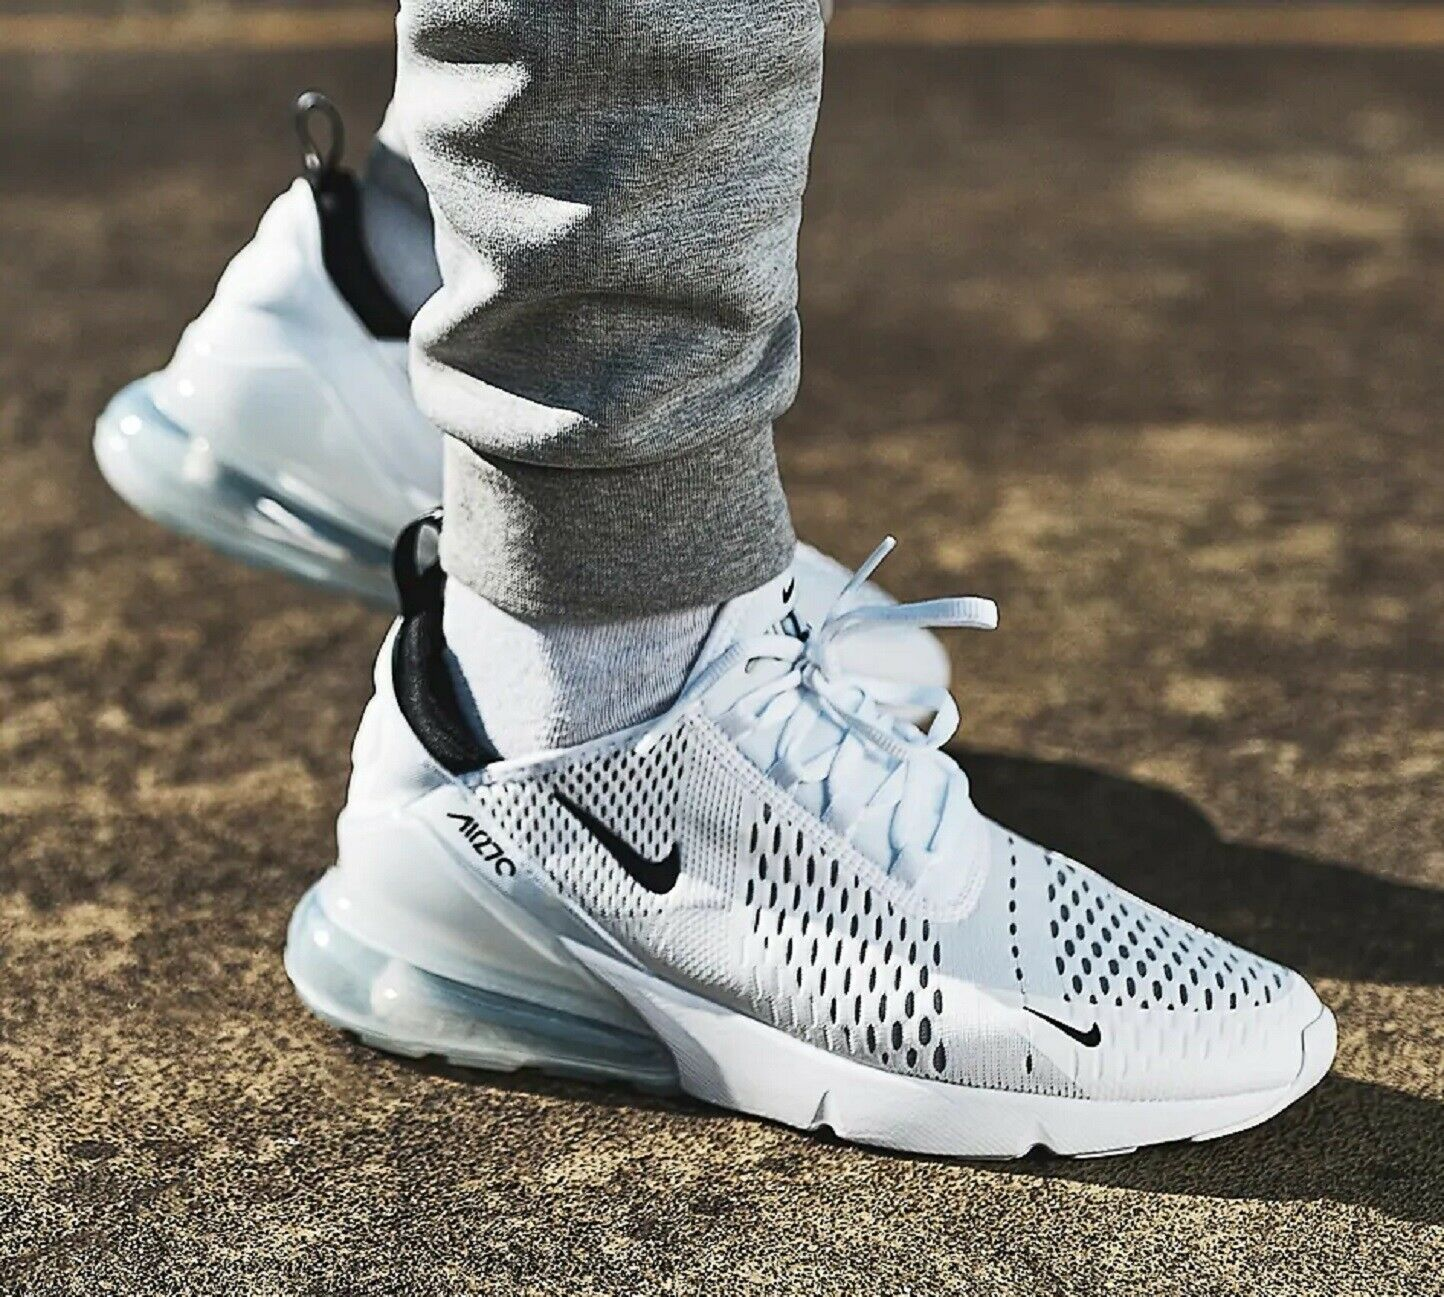 Nike Air Max 270 Sneaker Men S Lifestyle Shoes Nike Schuhe Manner Nike Air Max Air Max Sneakers